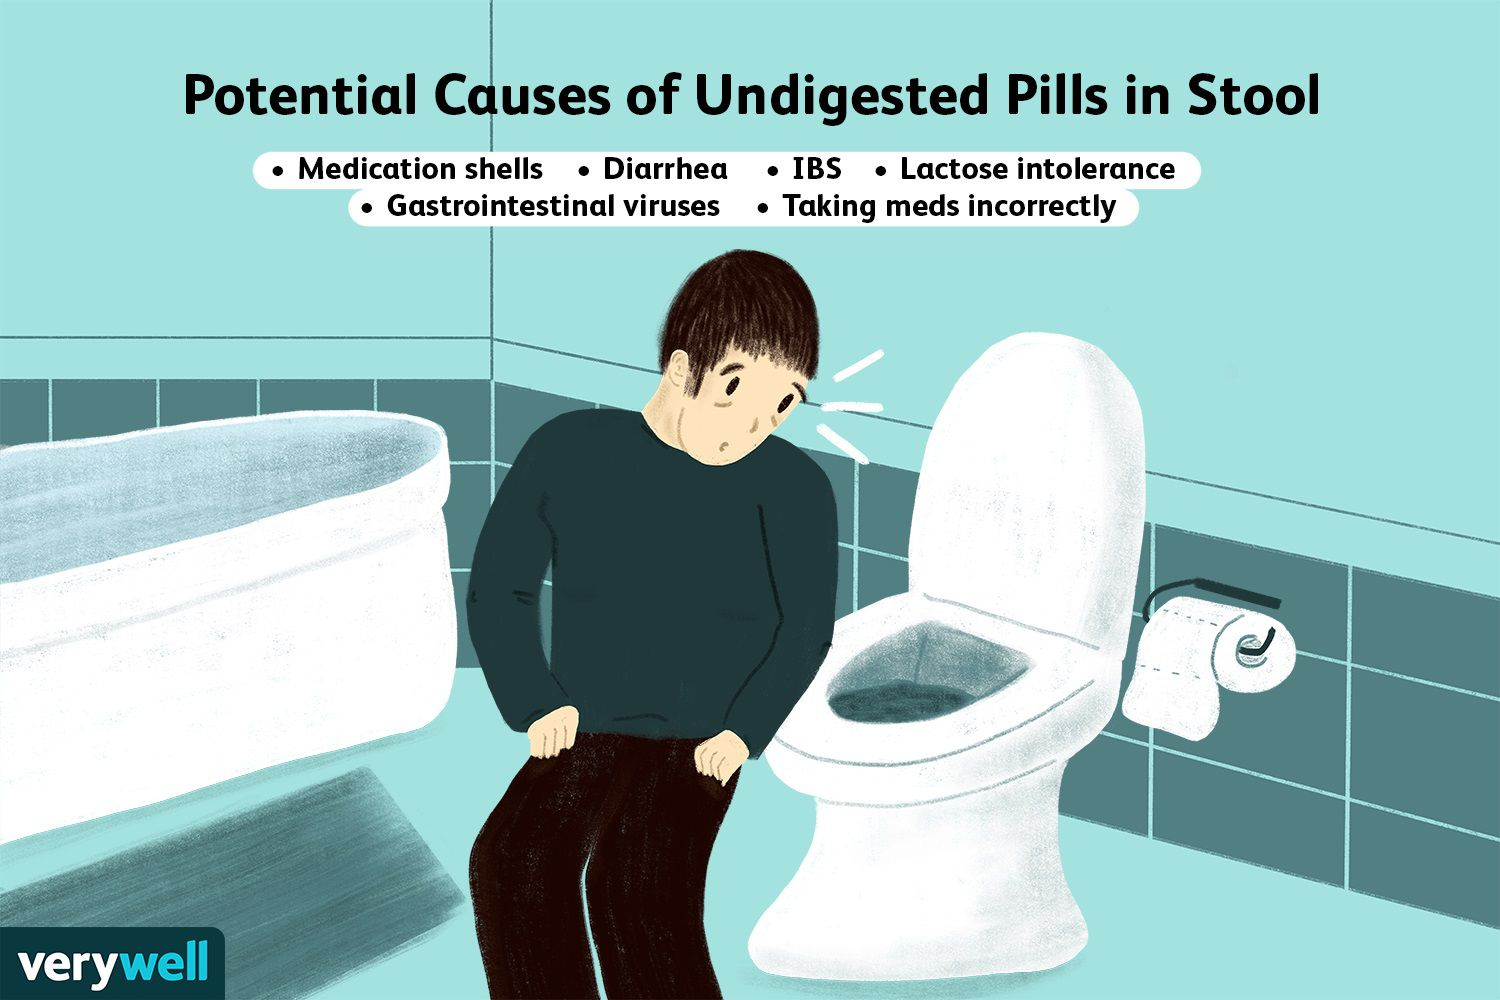 Potential Causes of Undigested Pills in Stool